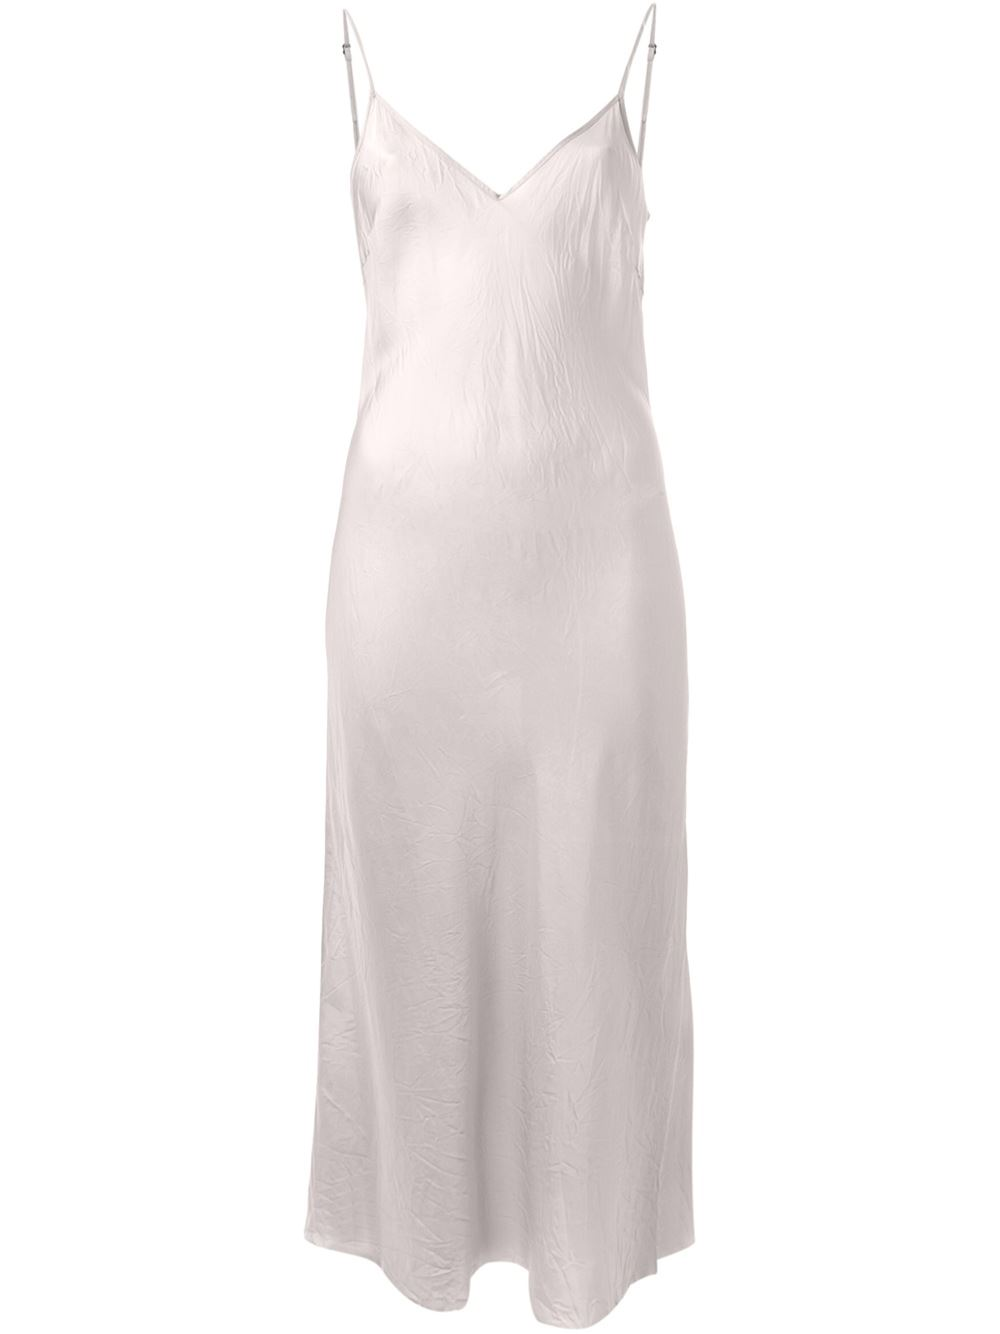 Organic by John Patrick Midi Slip Dress